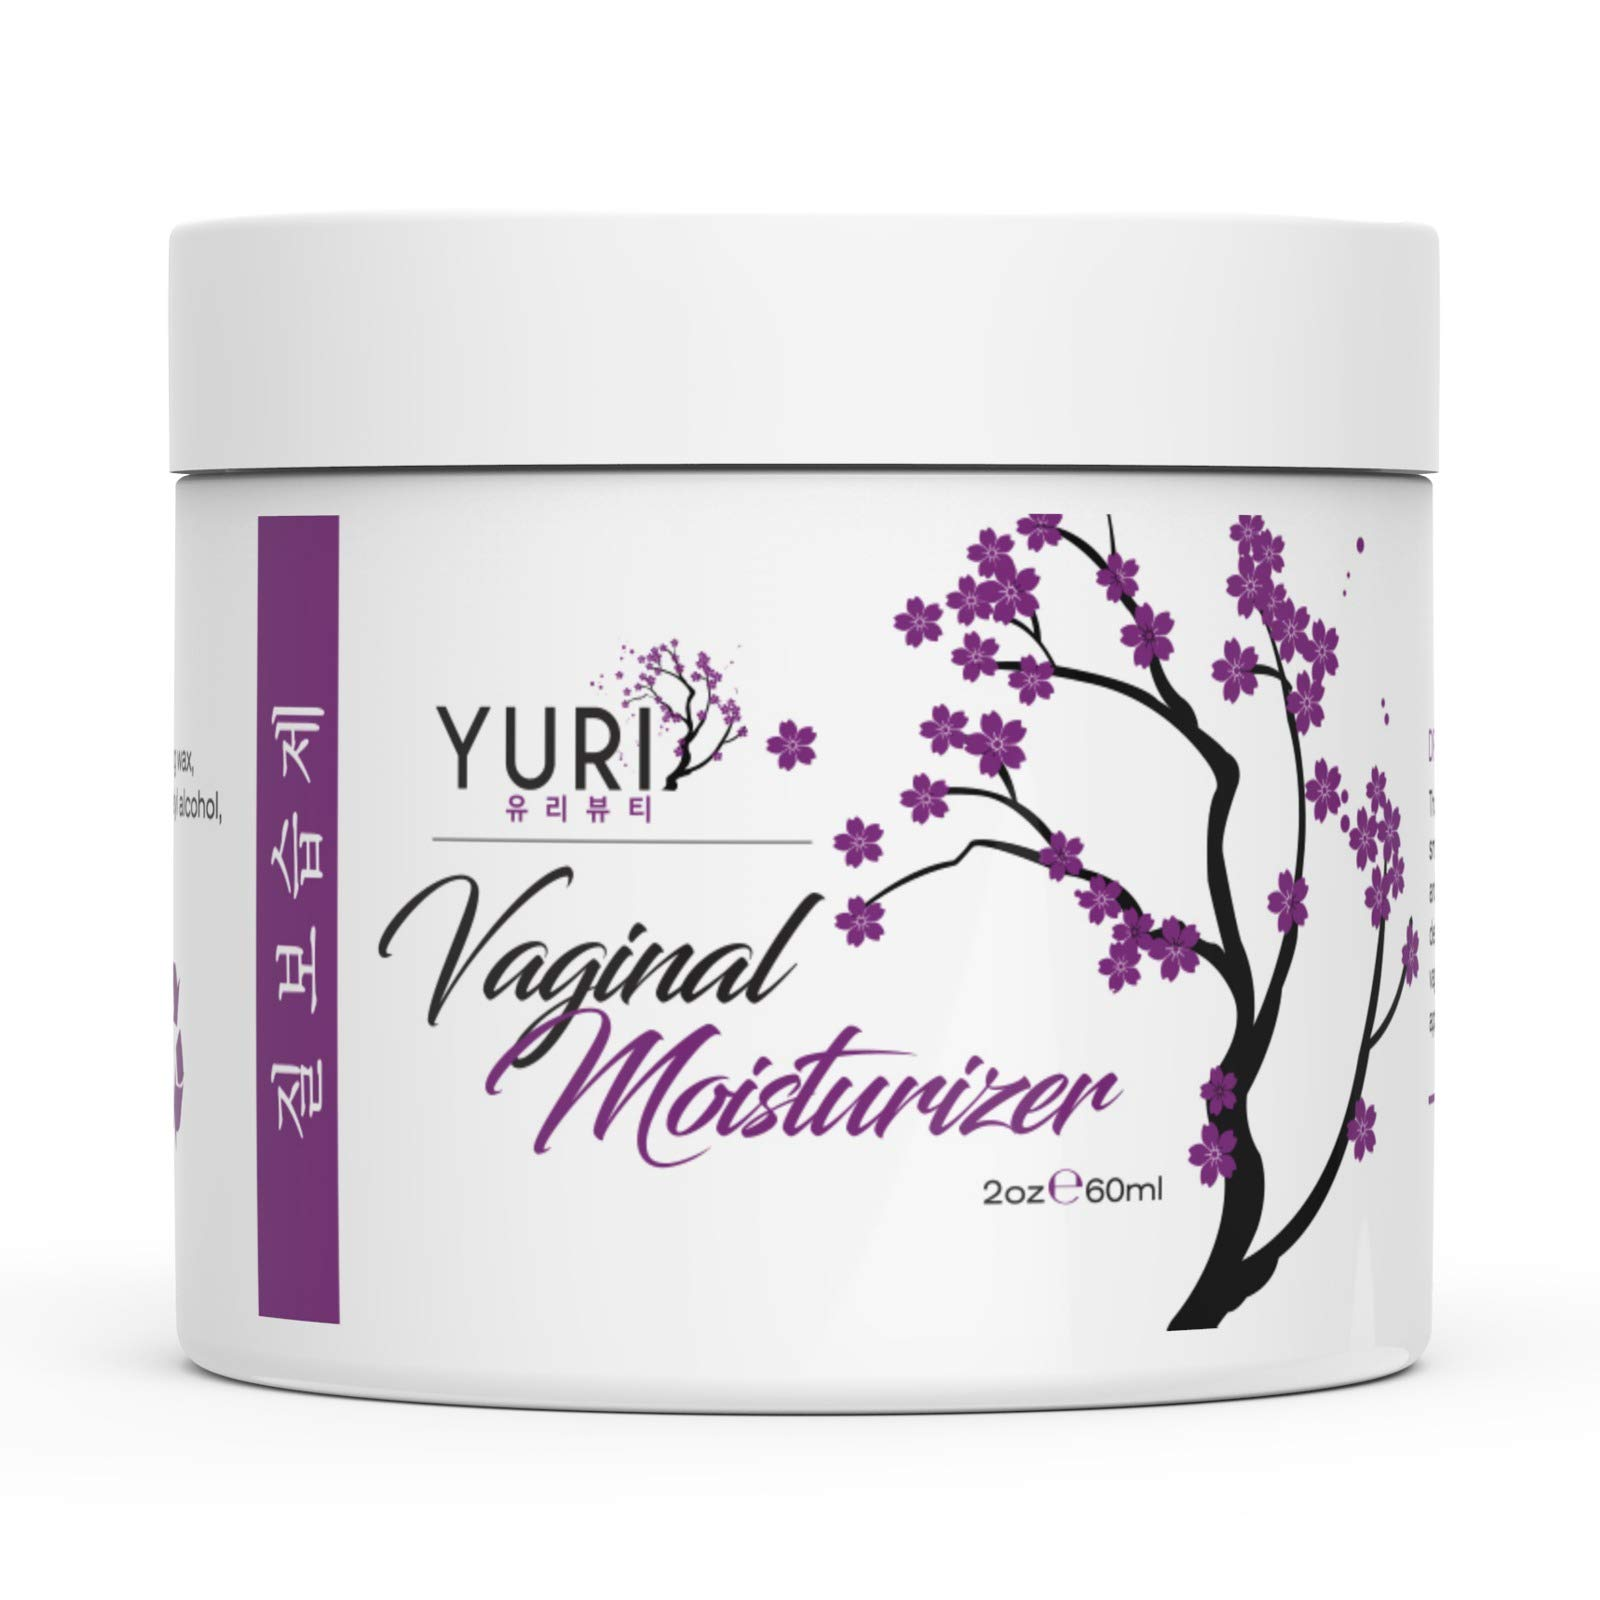 Vaginal Moisturizer - Vulva Balm Intimate Skin Care, Relieves Dryness and Irritation, Redness, Burning Chafing, Itching, Odors 100% Natural - Moisturizes + Soothes + Personal Lubricant - 2oz by Yuri